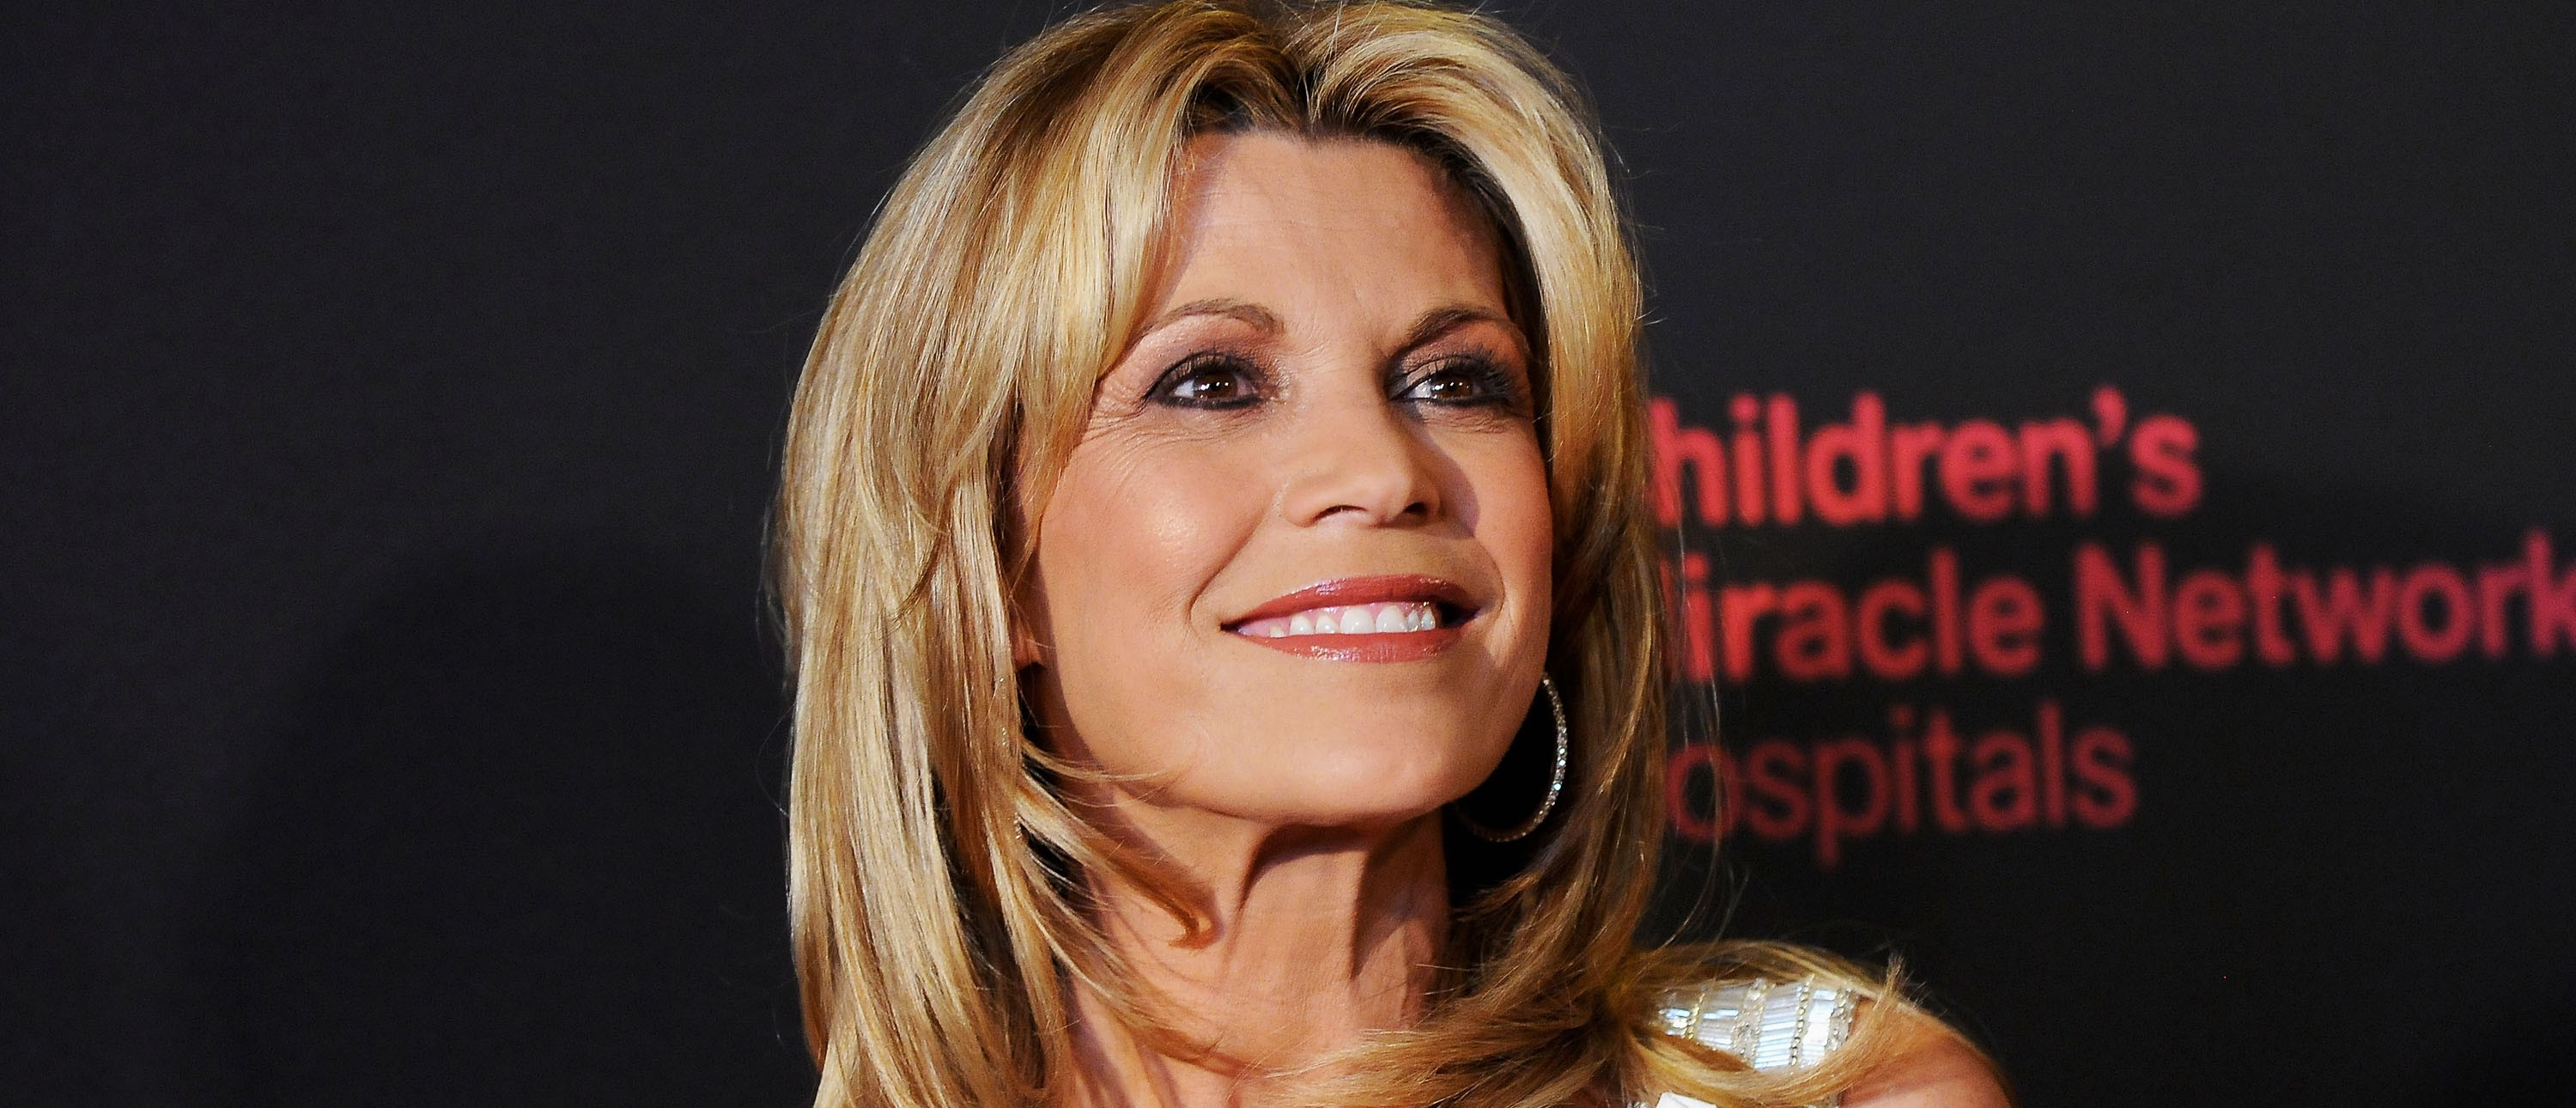 Vanna White Nude Photo Best vanna white regrets playboy cover | the daily caller